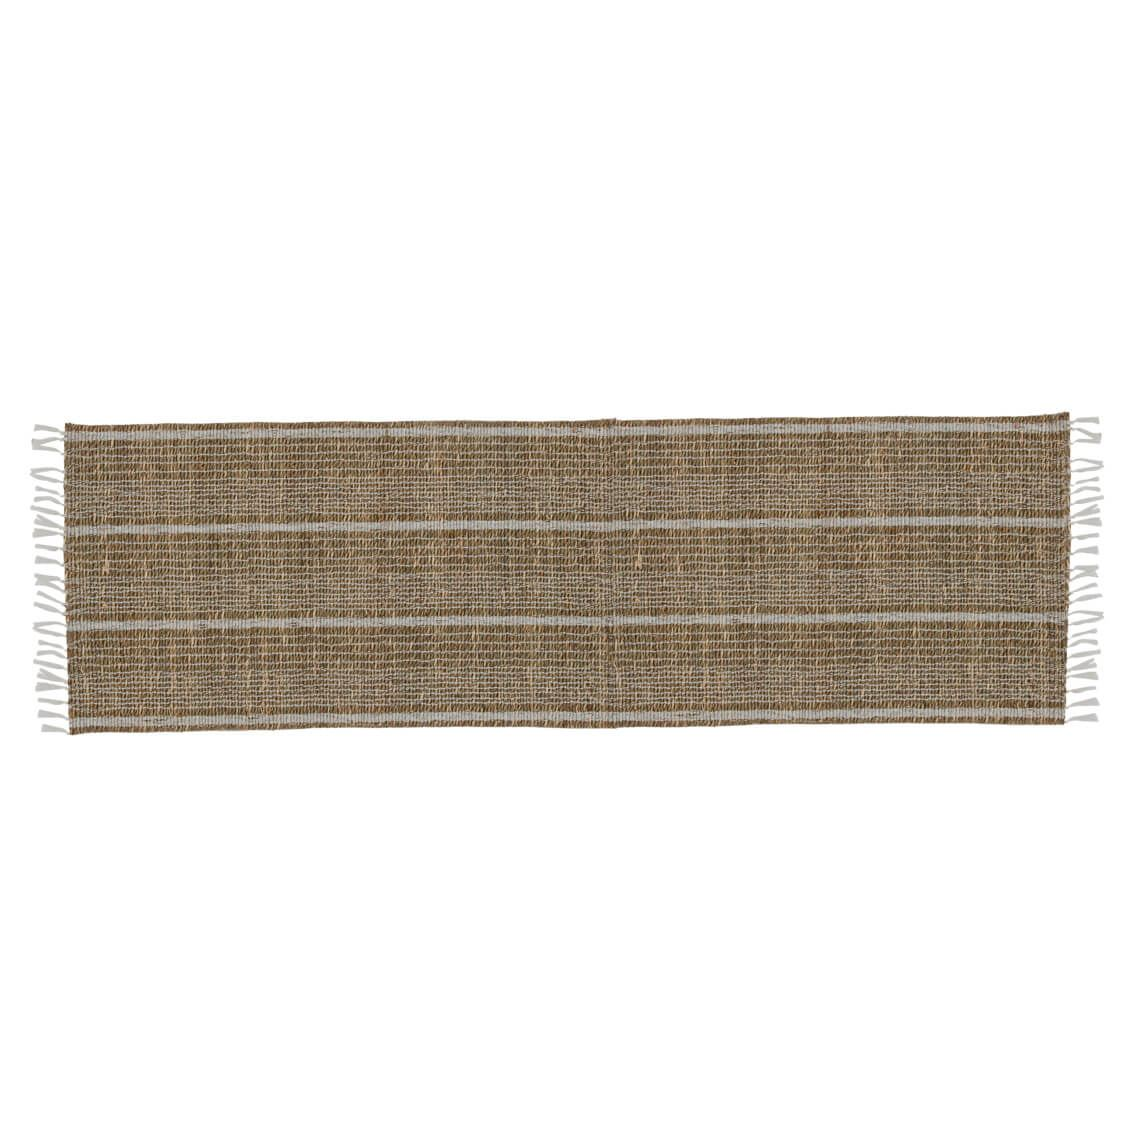 Tierney Table Runner Size W 35cm x D 120cm x H 1cm in Natural/White Freedom